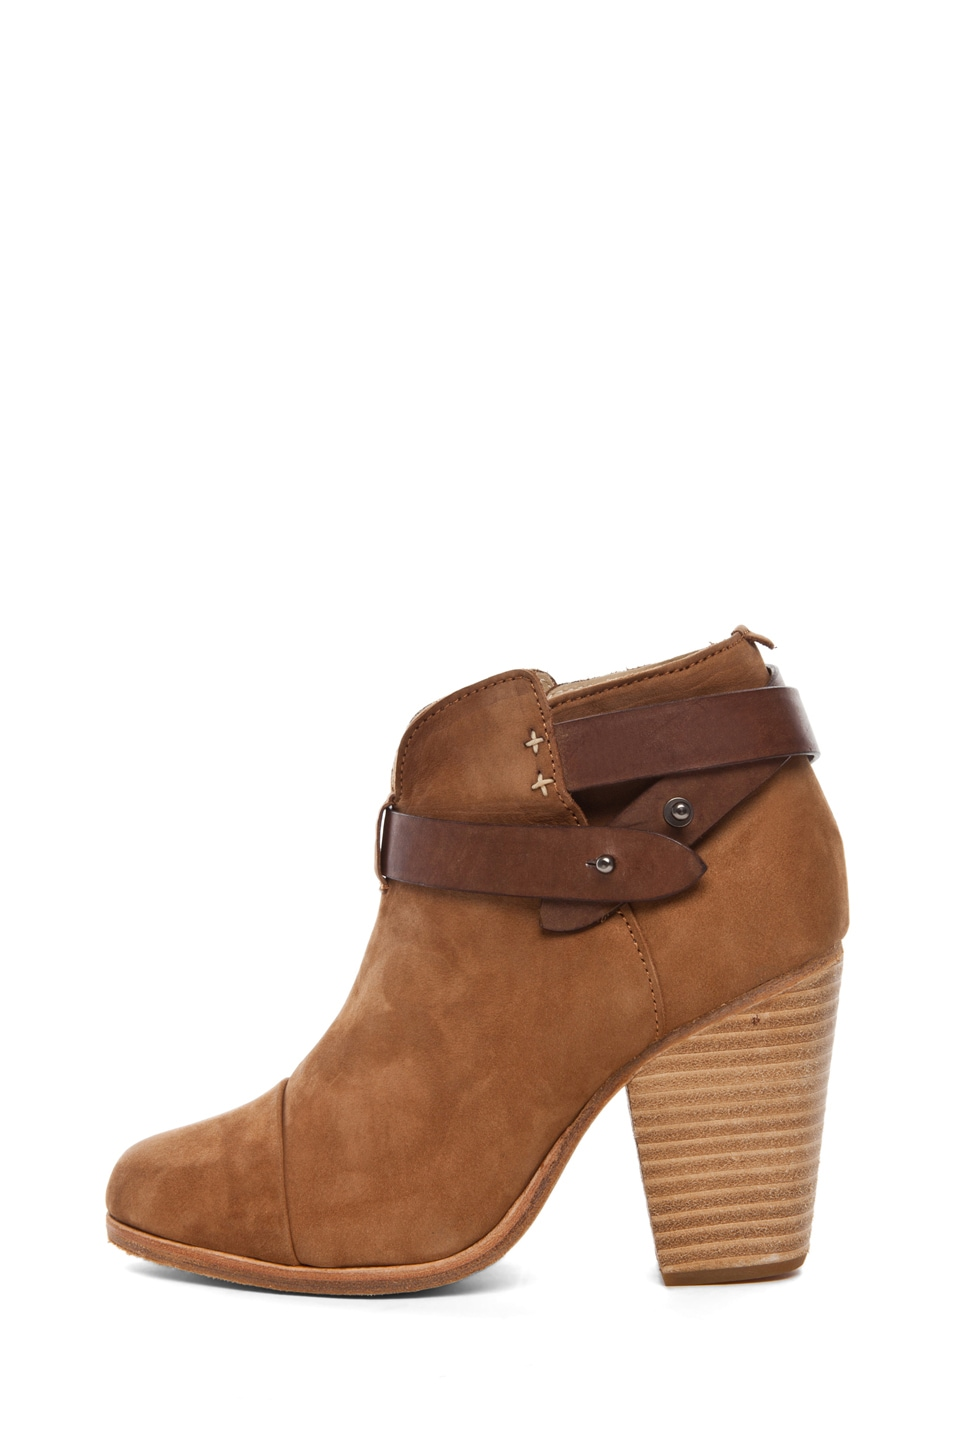 Image 1 of Rag & Bone Harrow Suede Boots in Camel